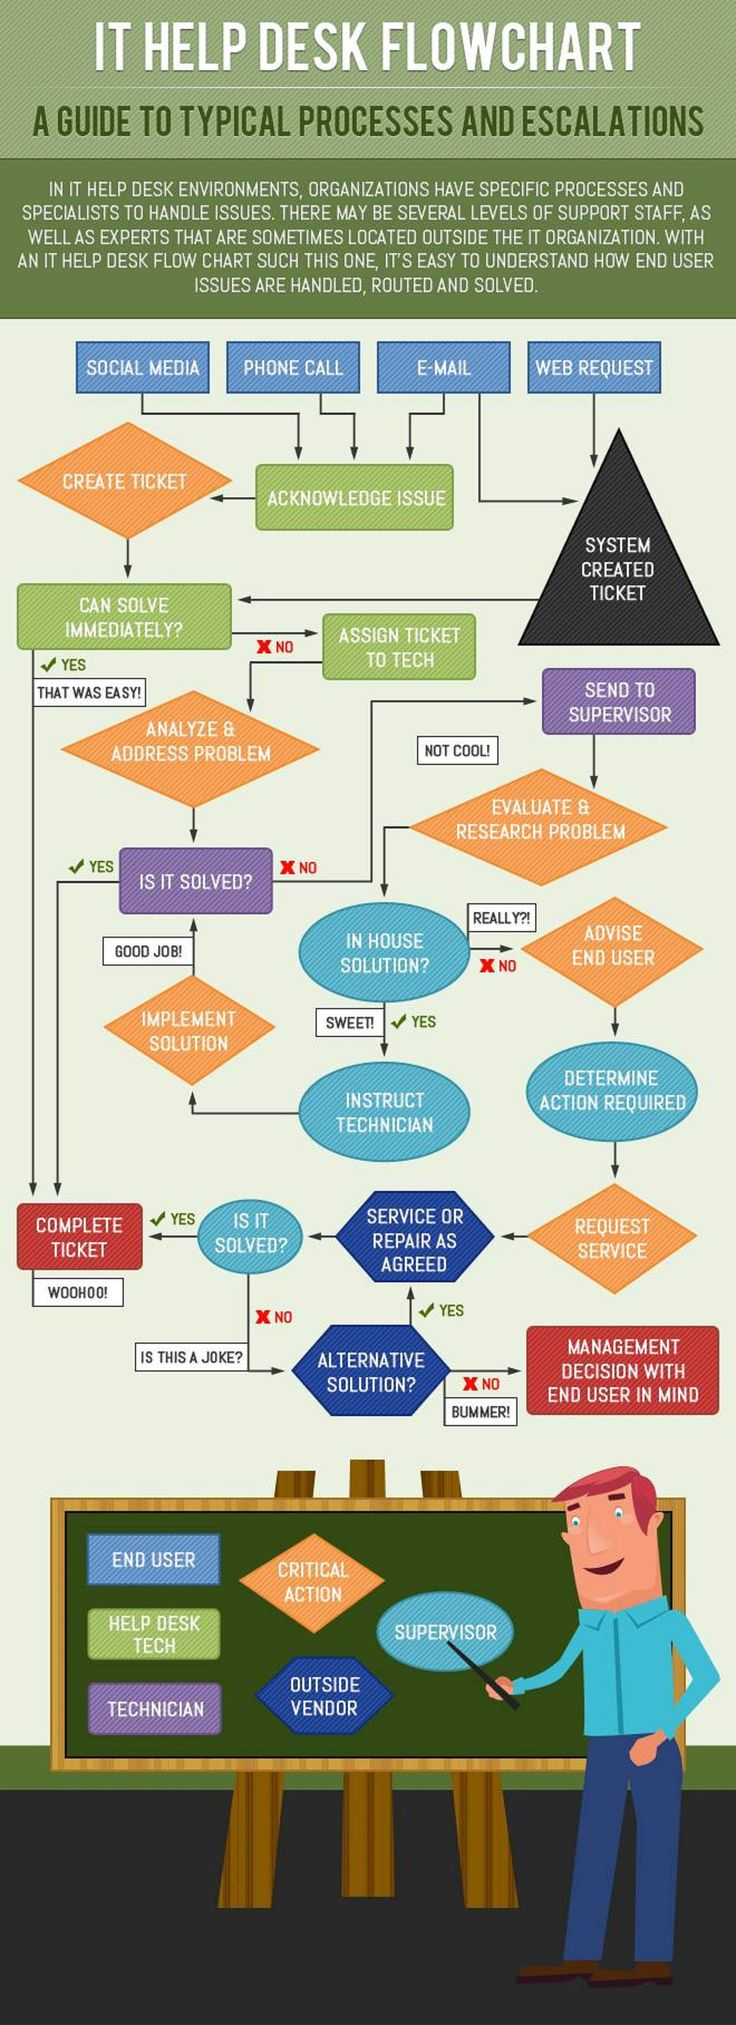 83 best i love flow charts and other sorts of graphs images on it help desk flowchart infographic geenschuldenfo Images